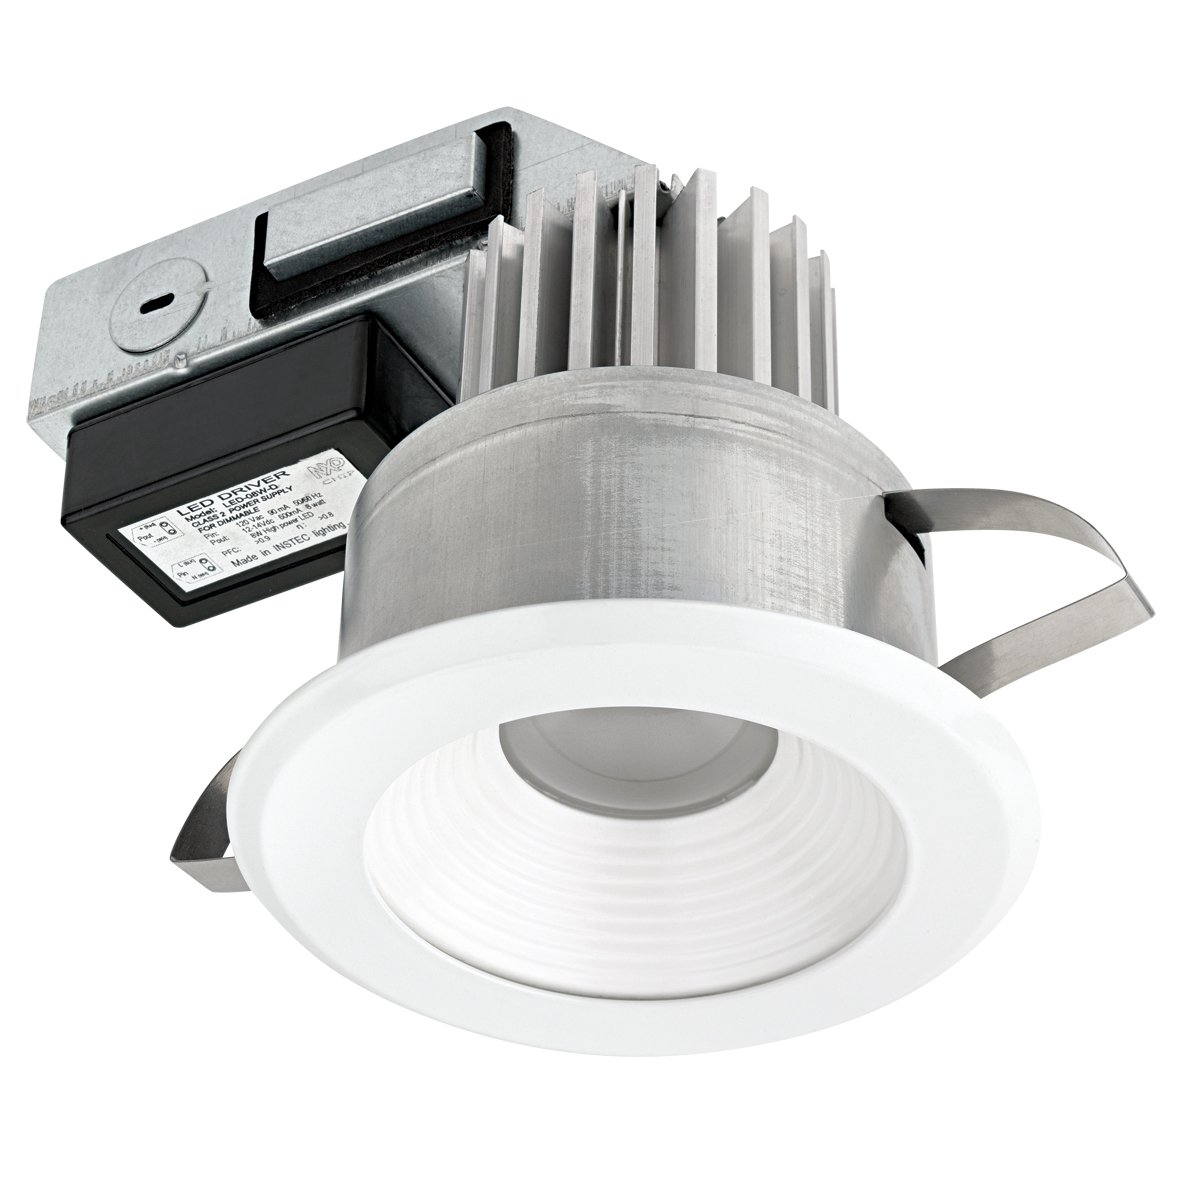 Globe Electric 90073 4 inch LED Integrated IC Rated Regressed Ridged Baffle Recessed Lighting Kit Title 24 Compliant,  Energy Star Certified, White Finish & Baffle